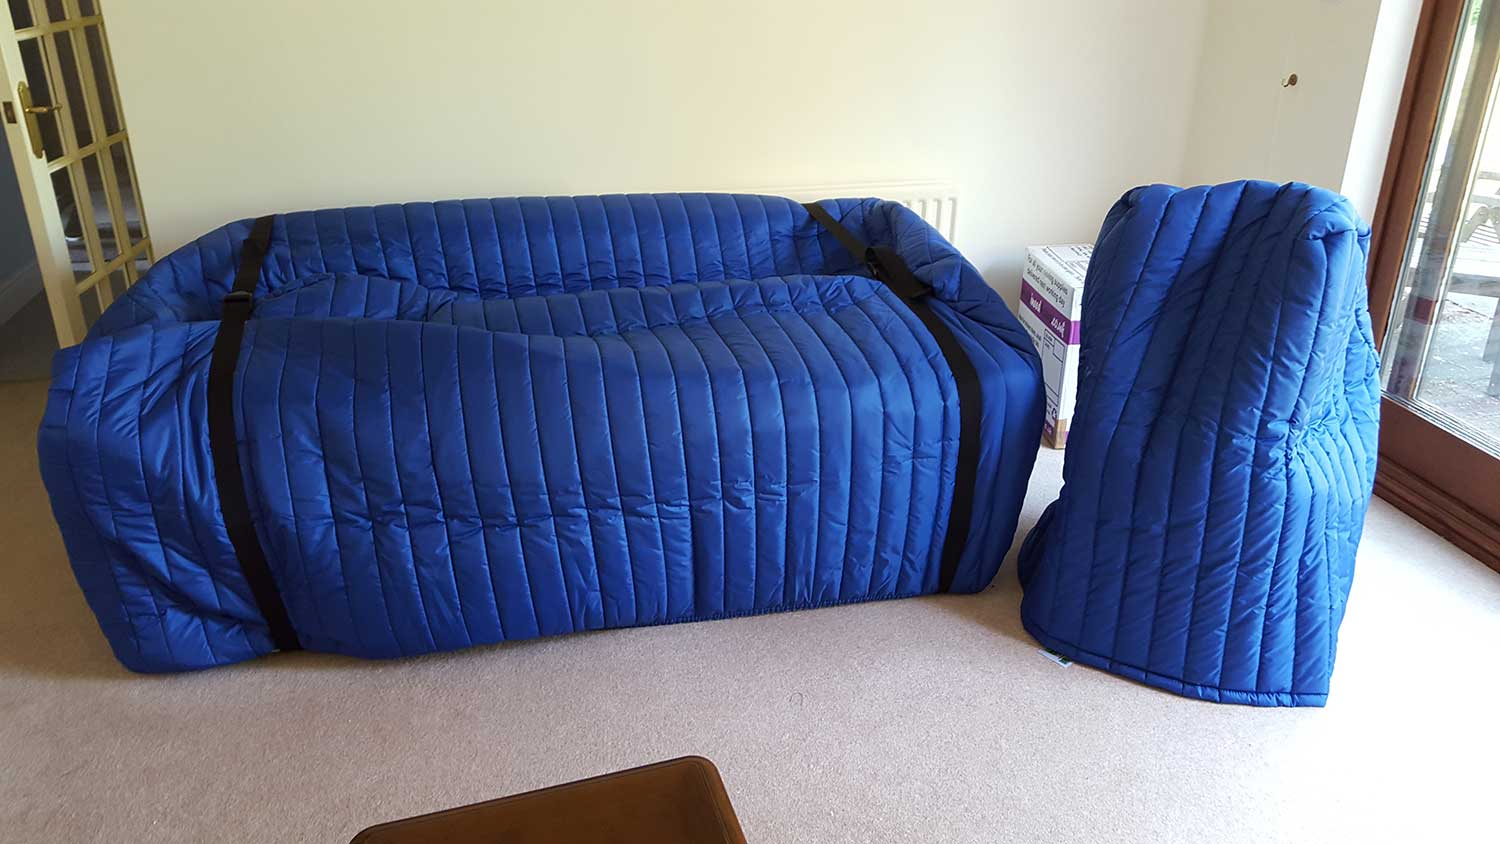 nyc sofa disposal wood legs canada removals too wont fit through door removal